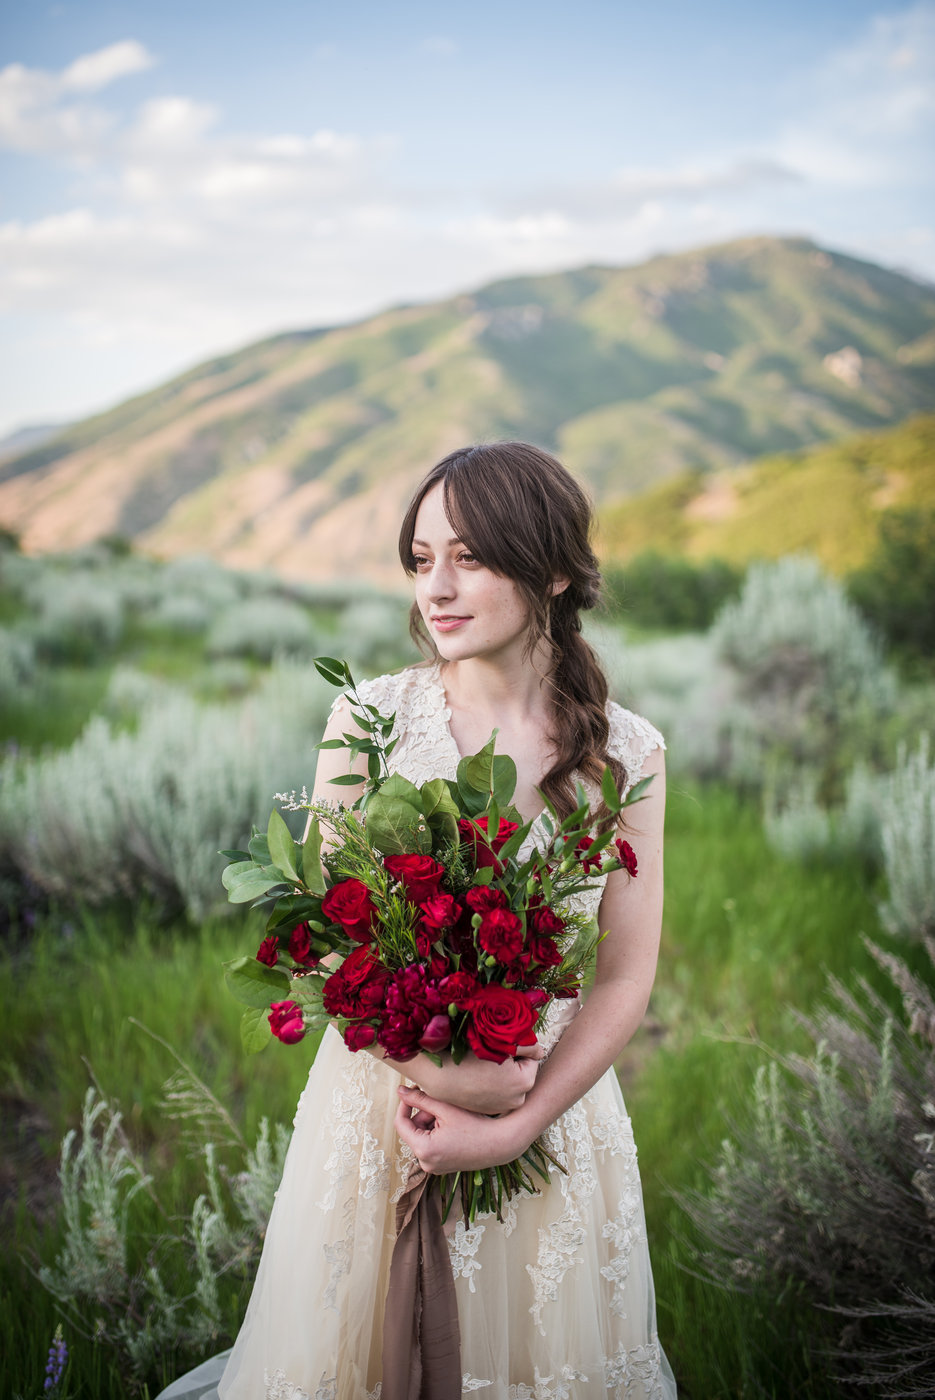 Intertwined Floral-Utah Photographer-Utah Wedding Photographer-Draper, Utah-Utah Bridals (4).jpg